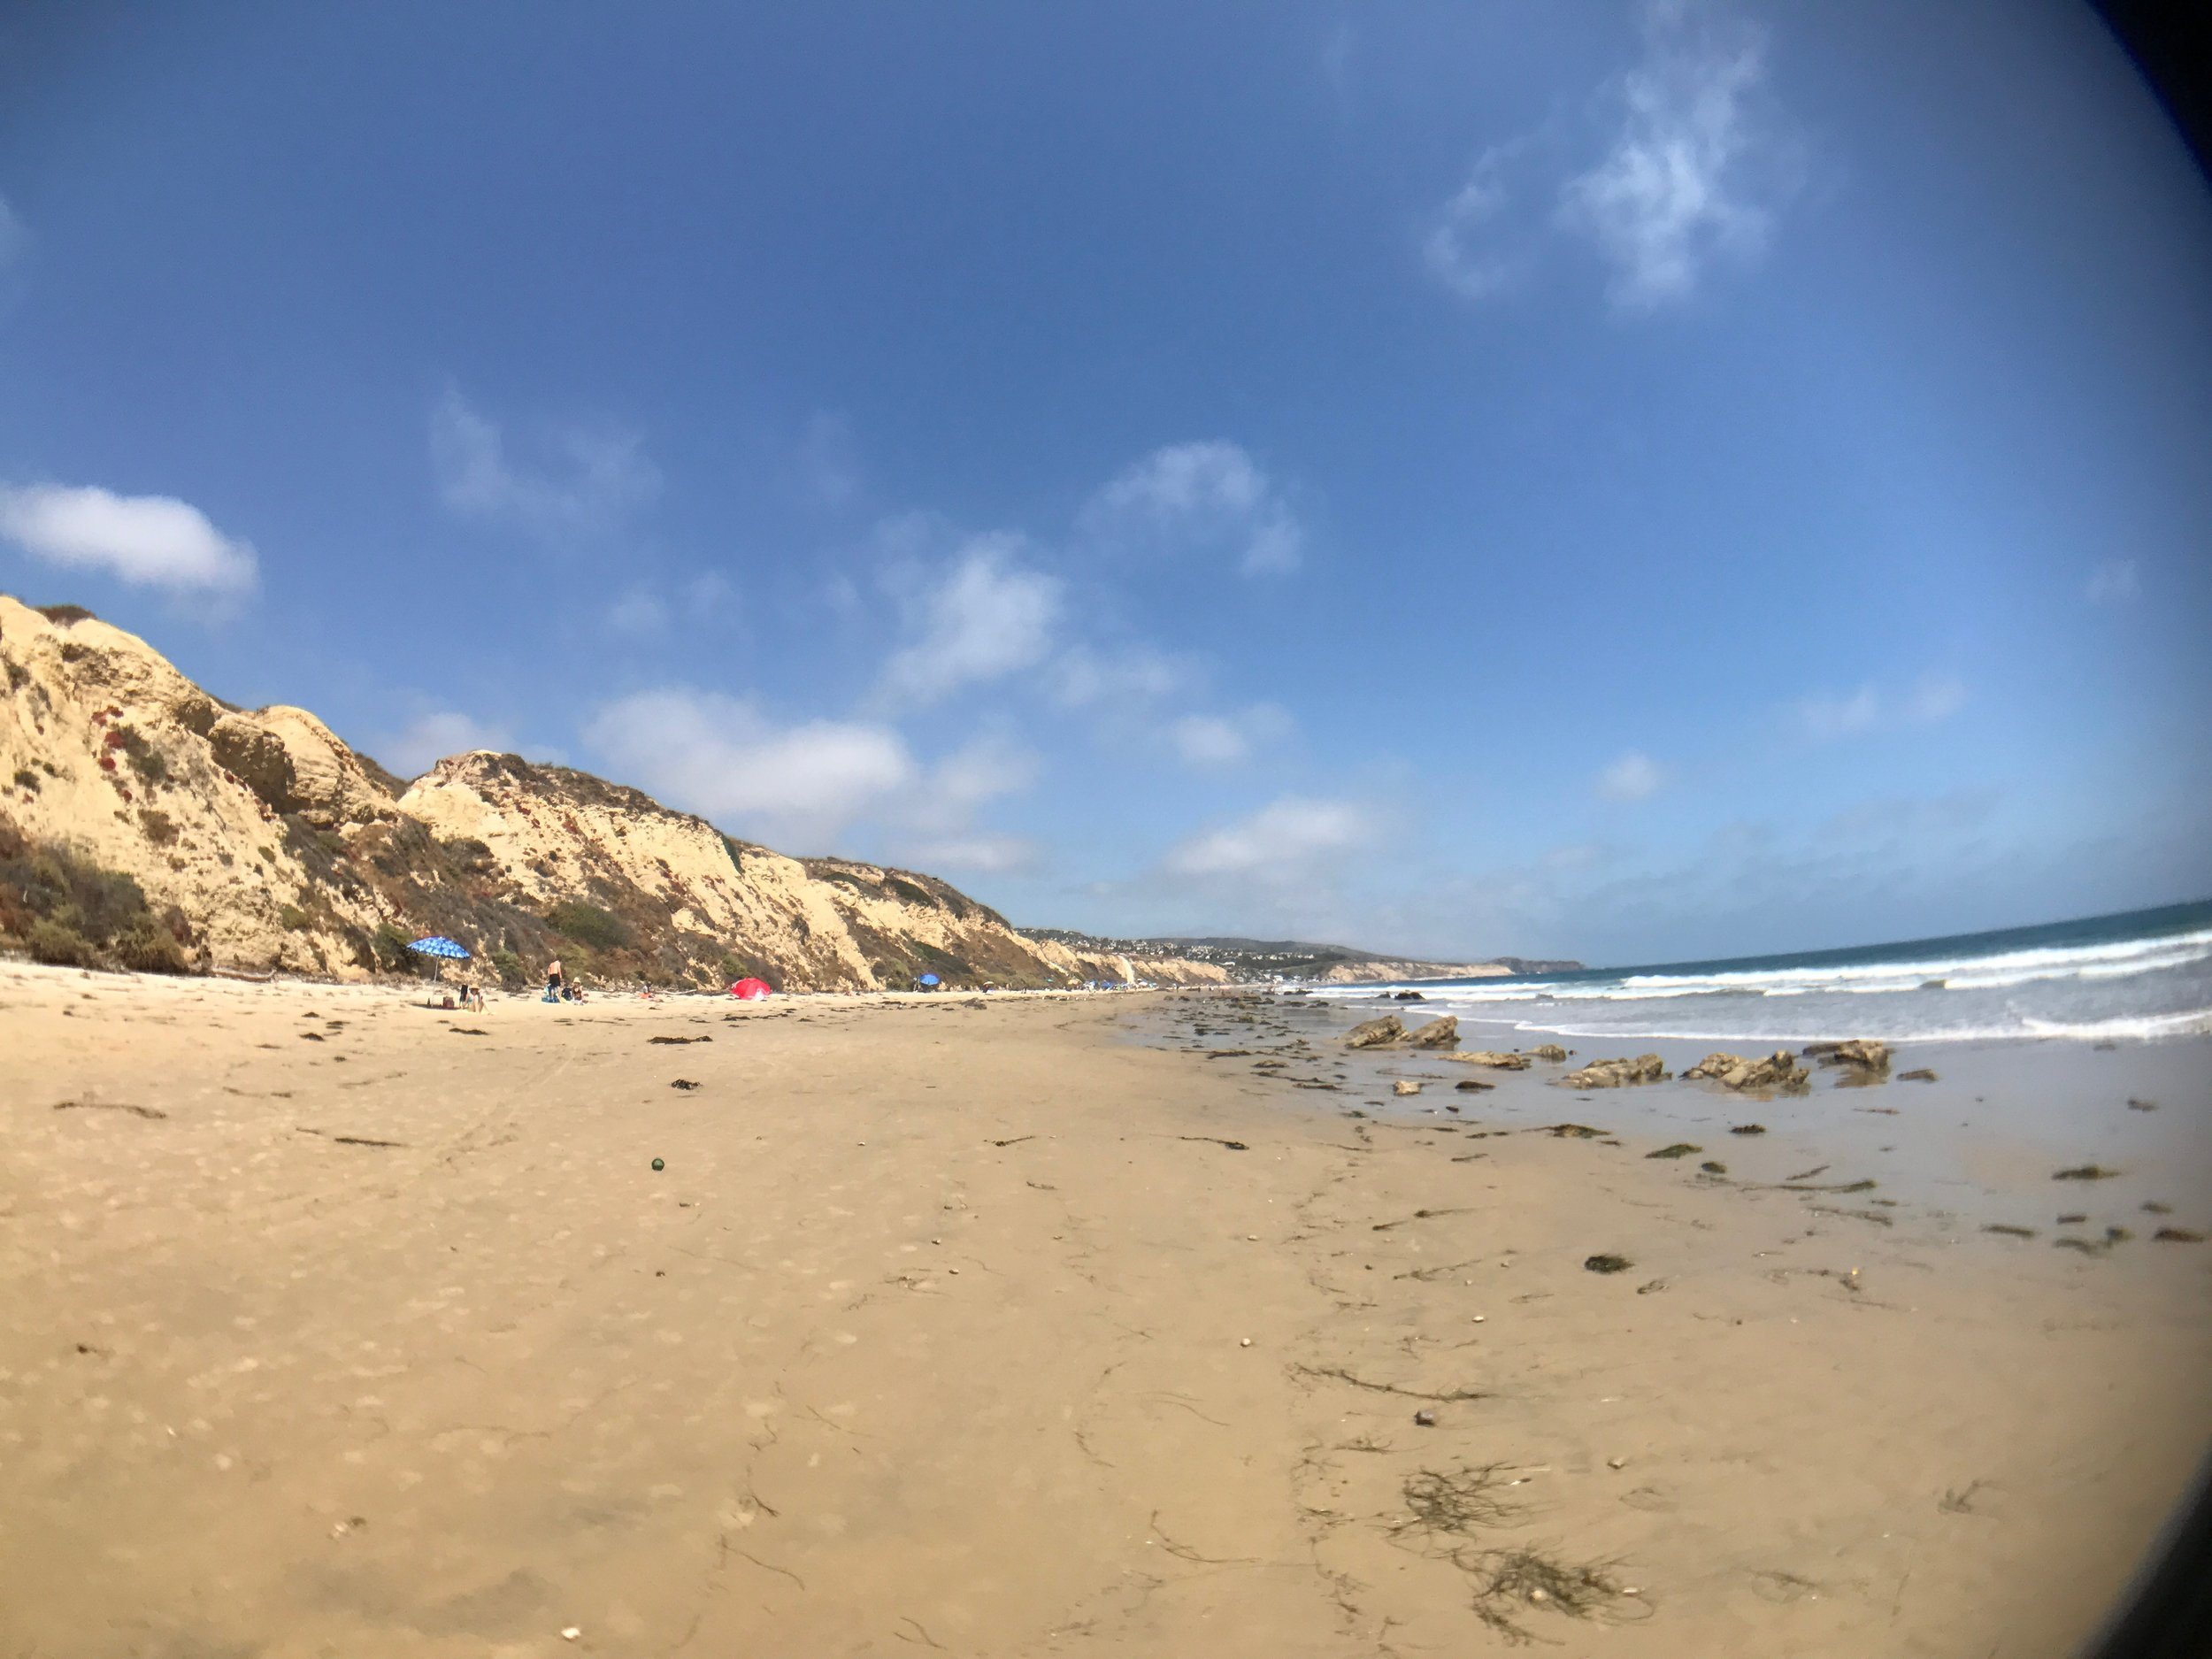 Perfect beach day at Crystal Cove